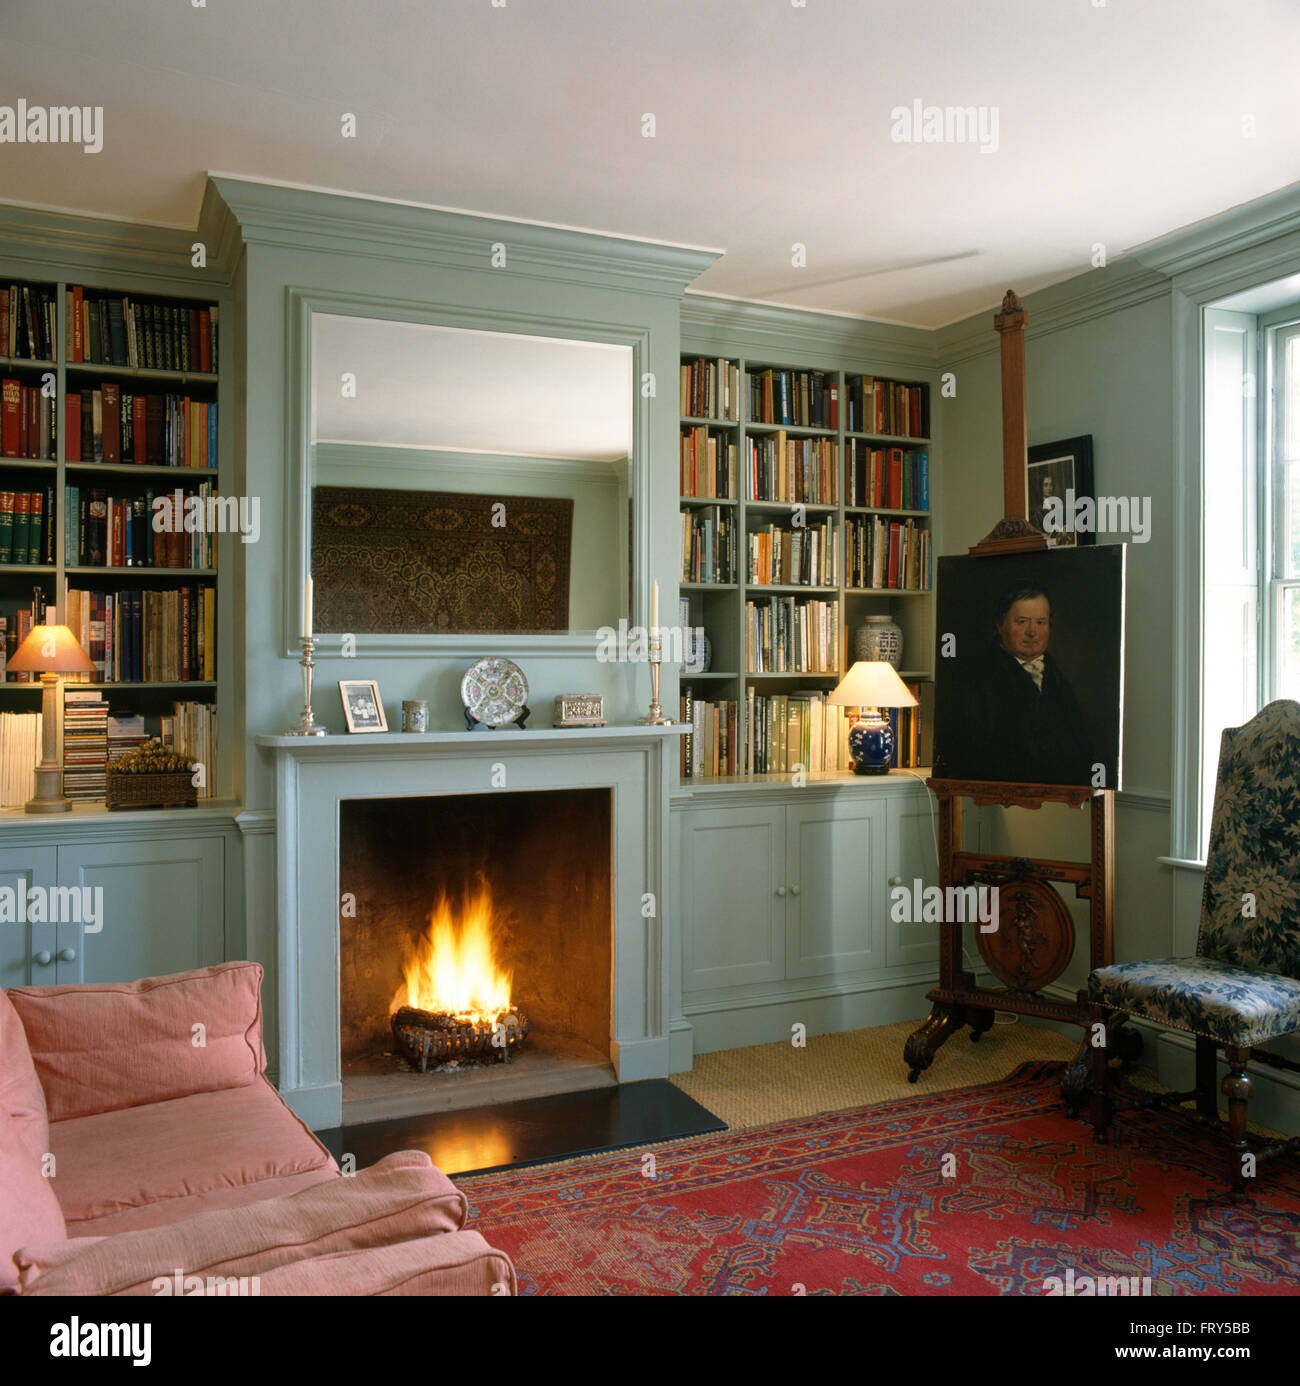 easel sitting stockfotos easel sitting bilder alamy. Black Bedroom Furniture Sets. Home Design Ideas